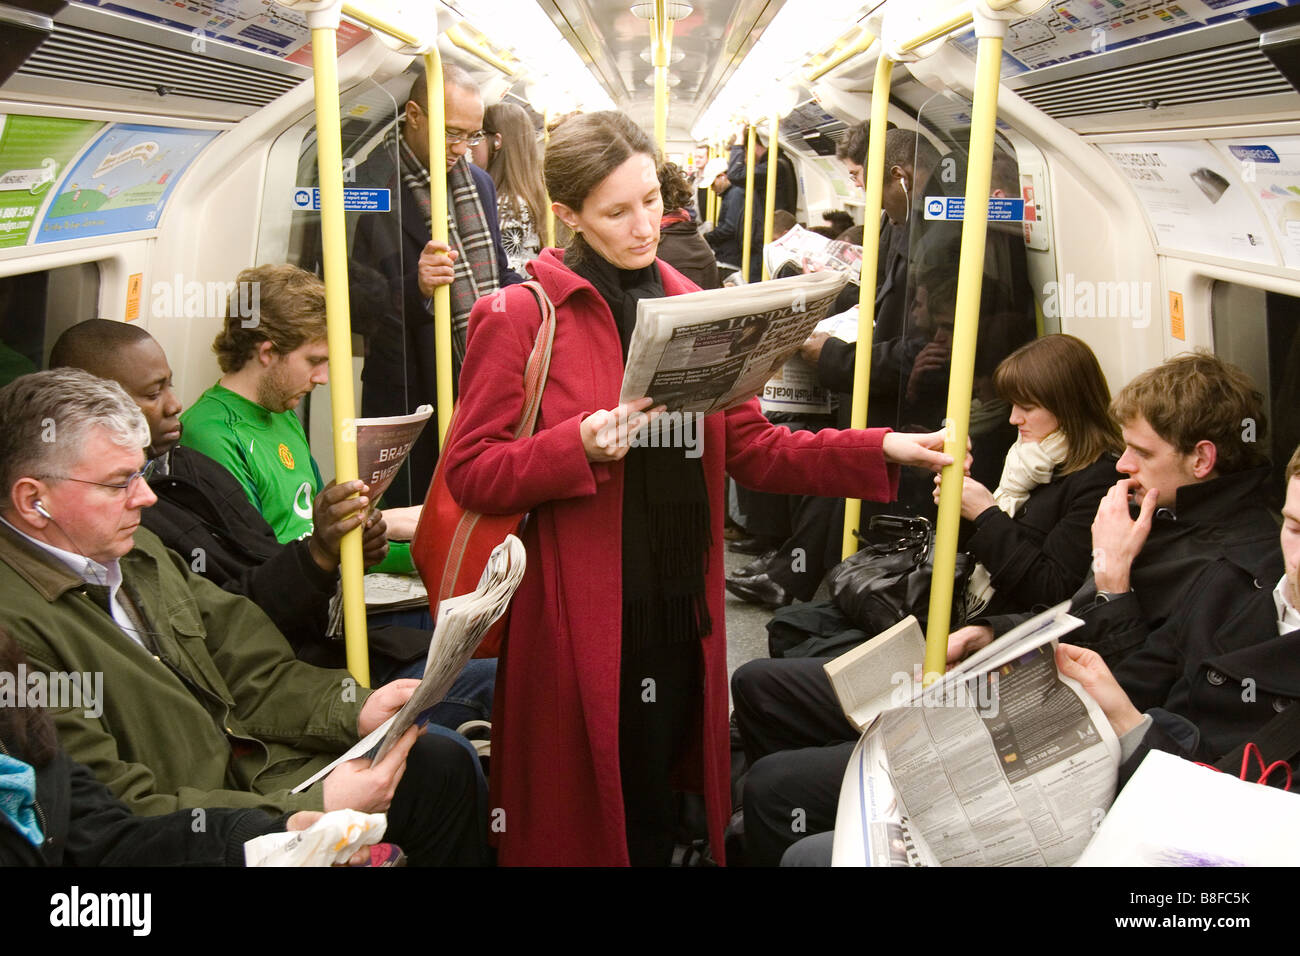 The Importance of Reading Newspaper